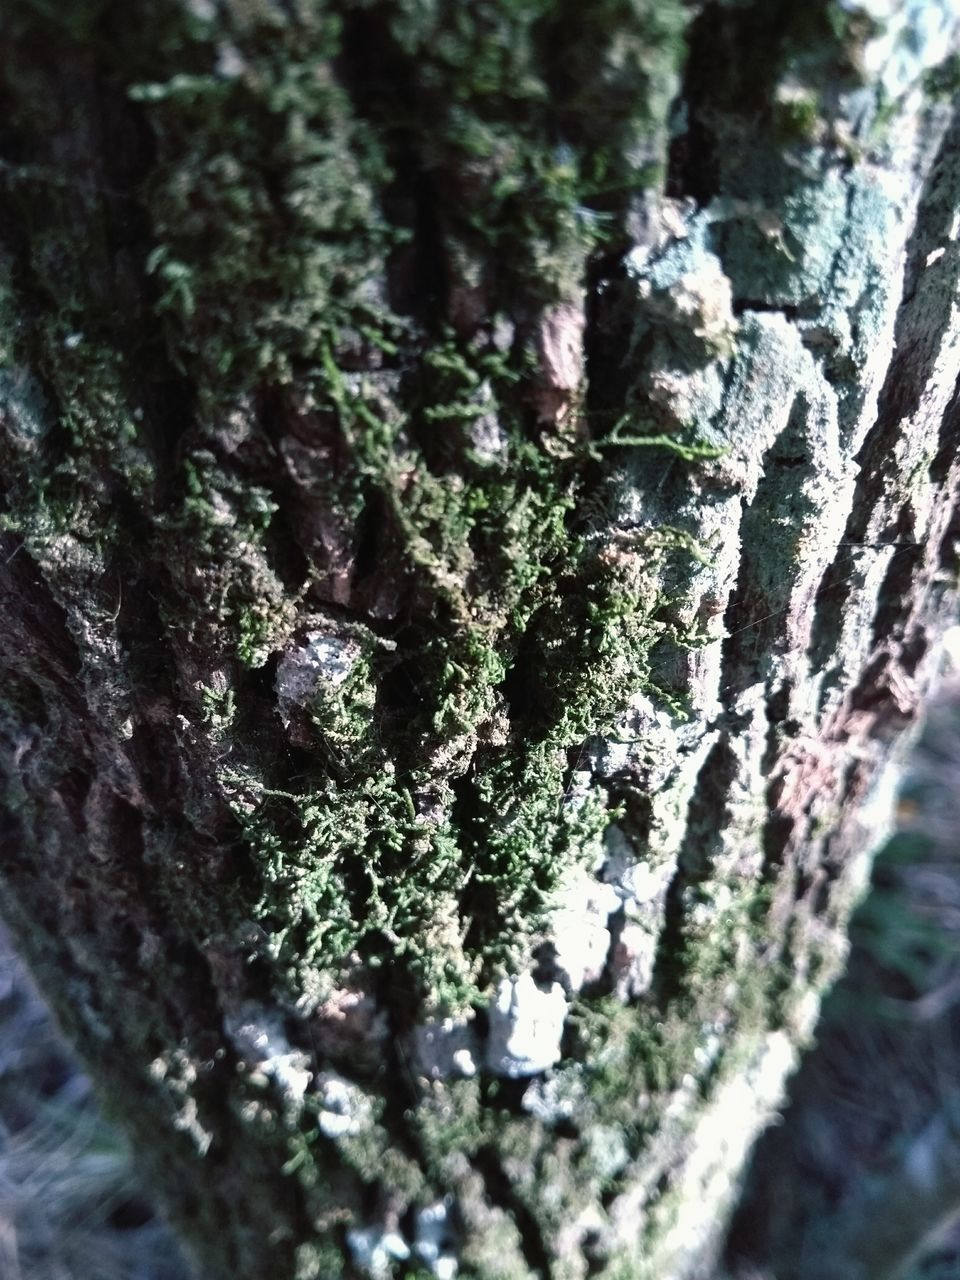 tree trunk, textured, moss, close-up, tree, no people, selective focus, rough, wood - material, nature, growth, day, bark, outdoors